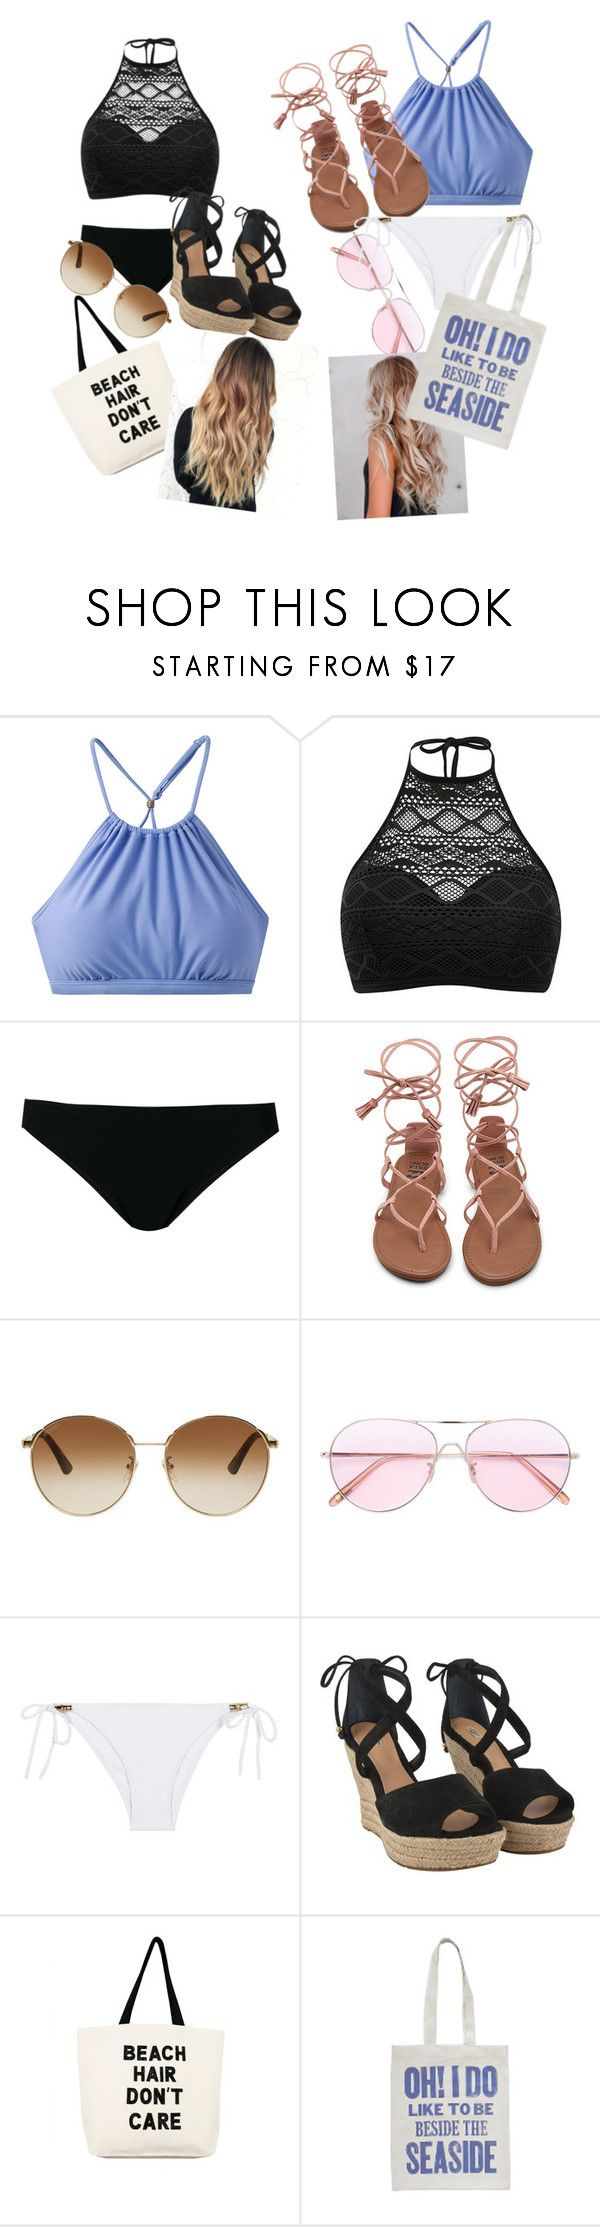 """""""miami beach!:)"""" by rosemariaxx ❤ liked on Polyvore featuring prAna, Rick Owens, Gucci, Oliver Peoples, Heidi Klein, UGG and Fallon & Royce"""